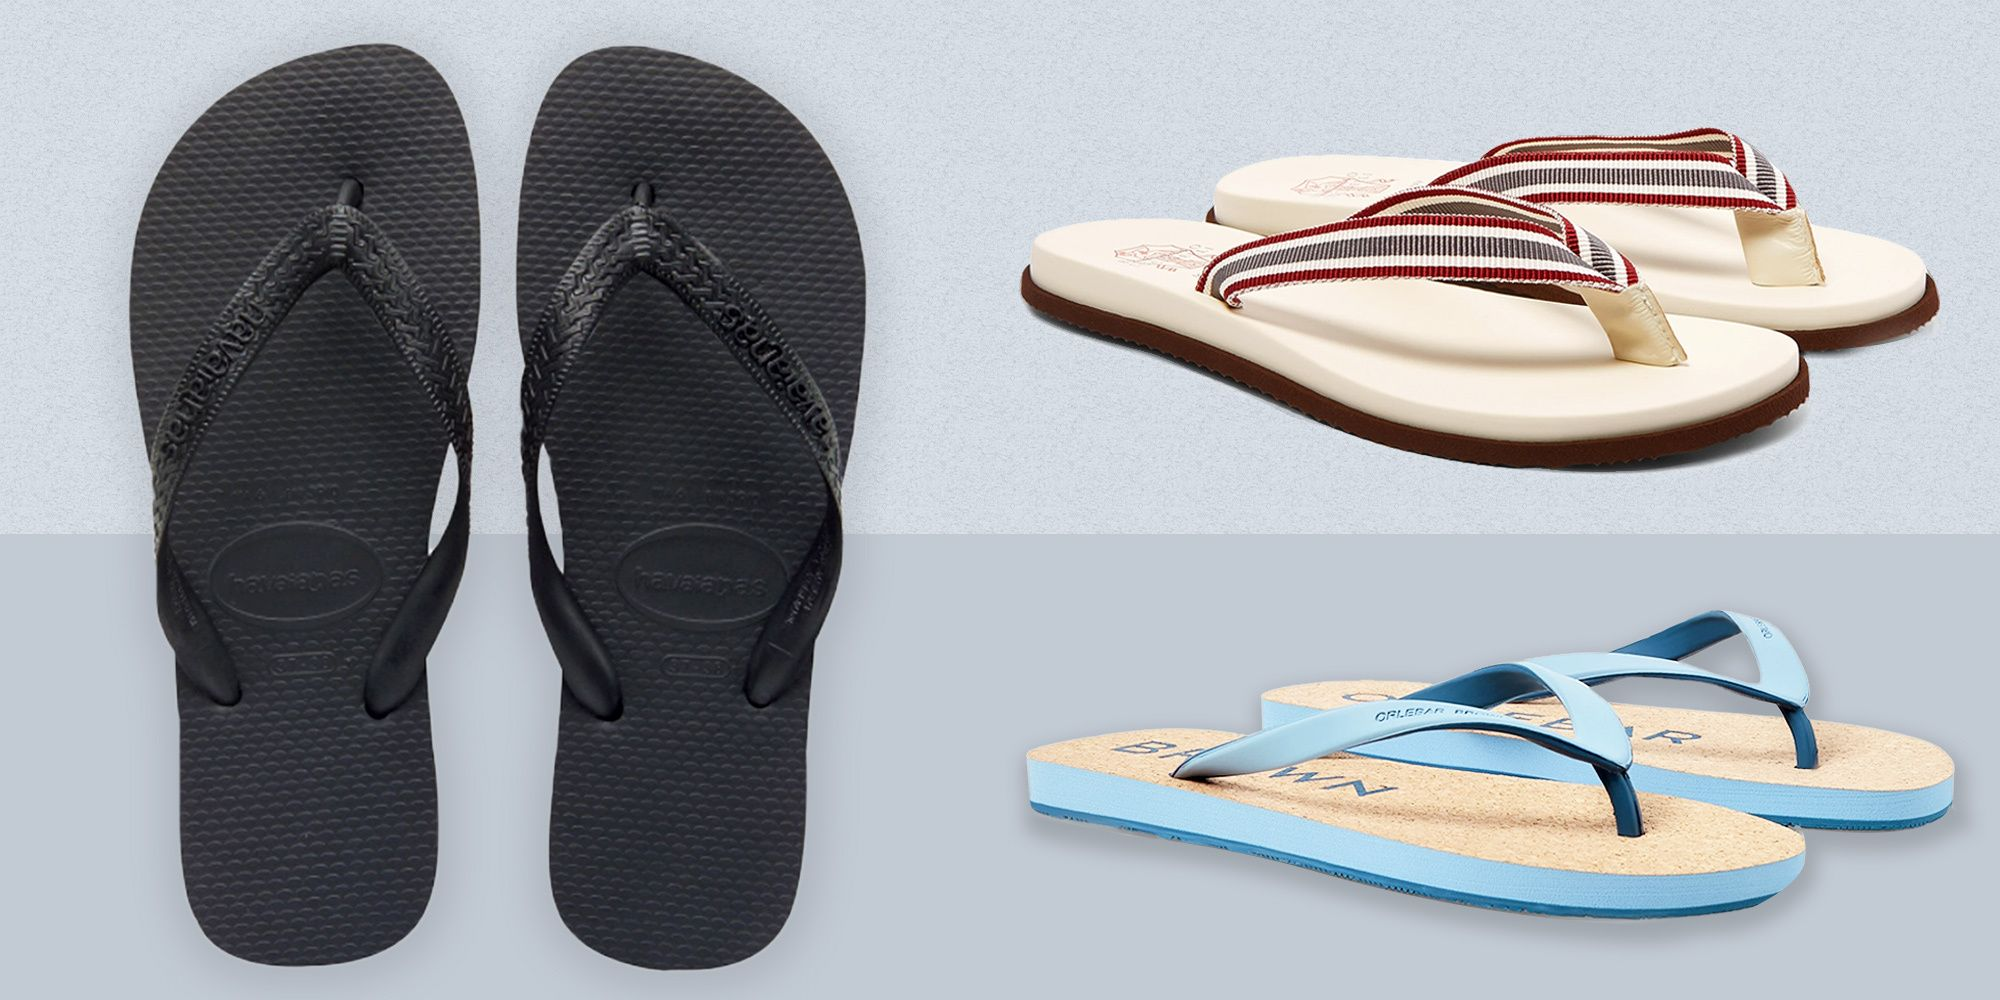 12 Flip-Flops You'll Want to Buy This Summer, Even If You Swore You'd Never Buy Flip-Flops